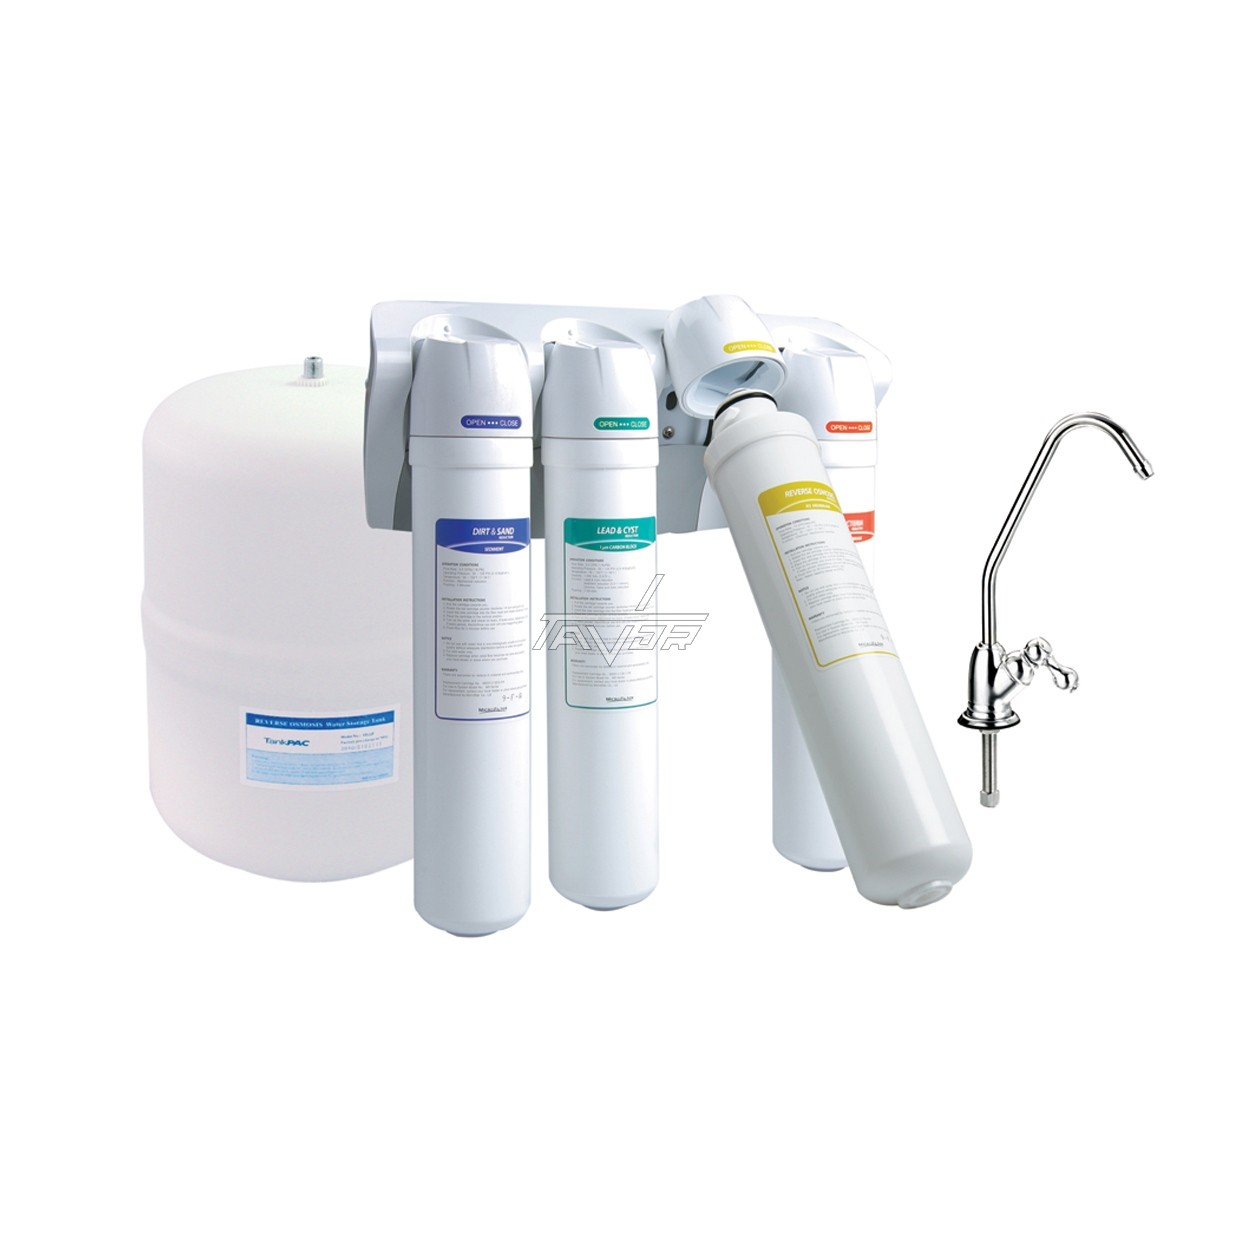 OSMOSIS WATER SYSTEM M9 -  50 GPD  WITH 4 WATER FILTERS